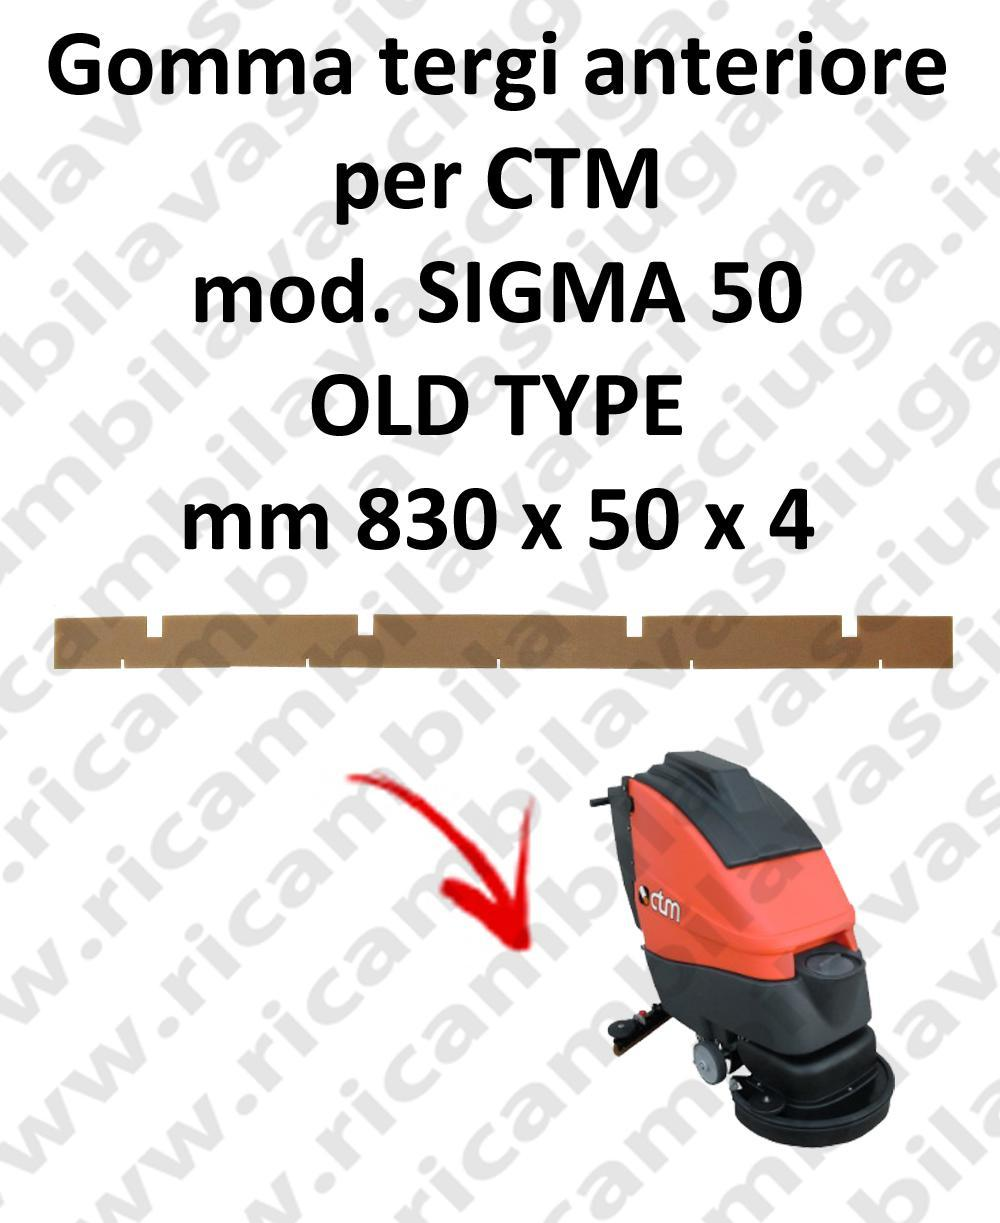 SIGMA 50 OLD TYPE Front Squeegee rubber for scrubber dryer CTM